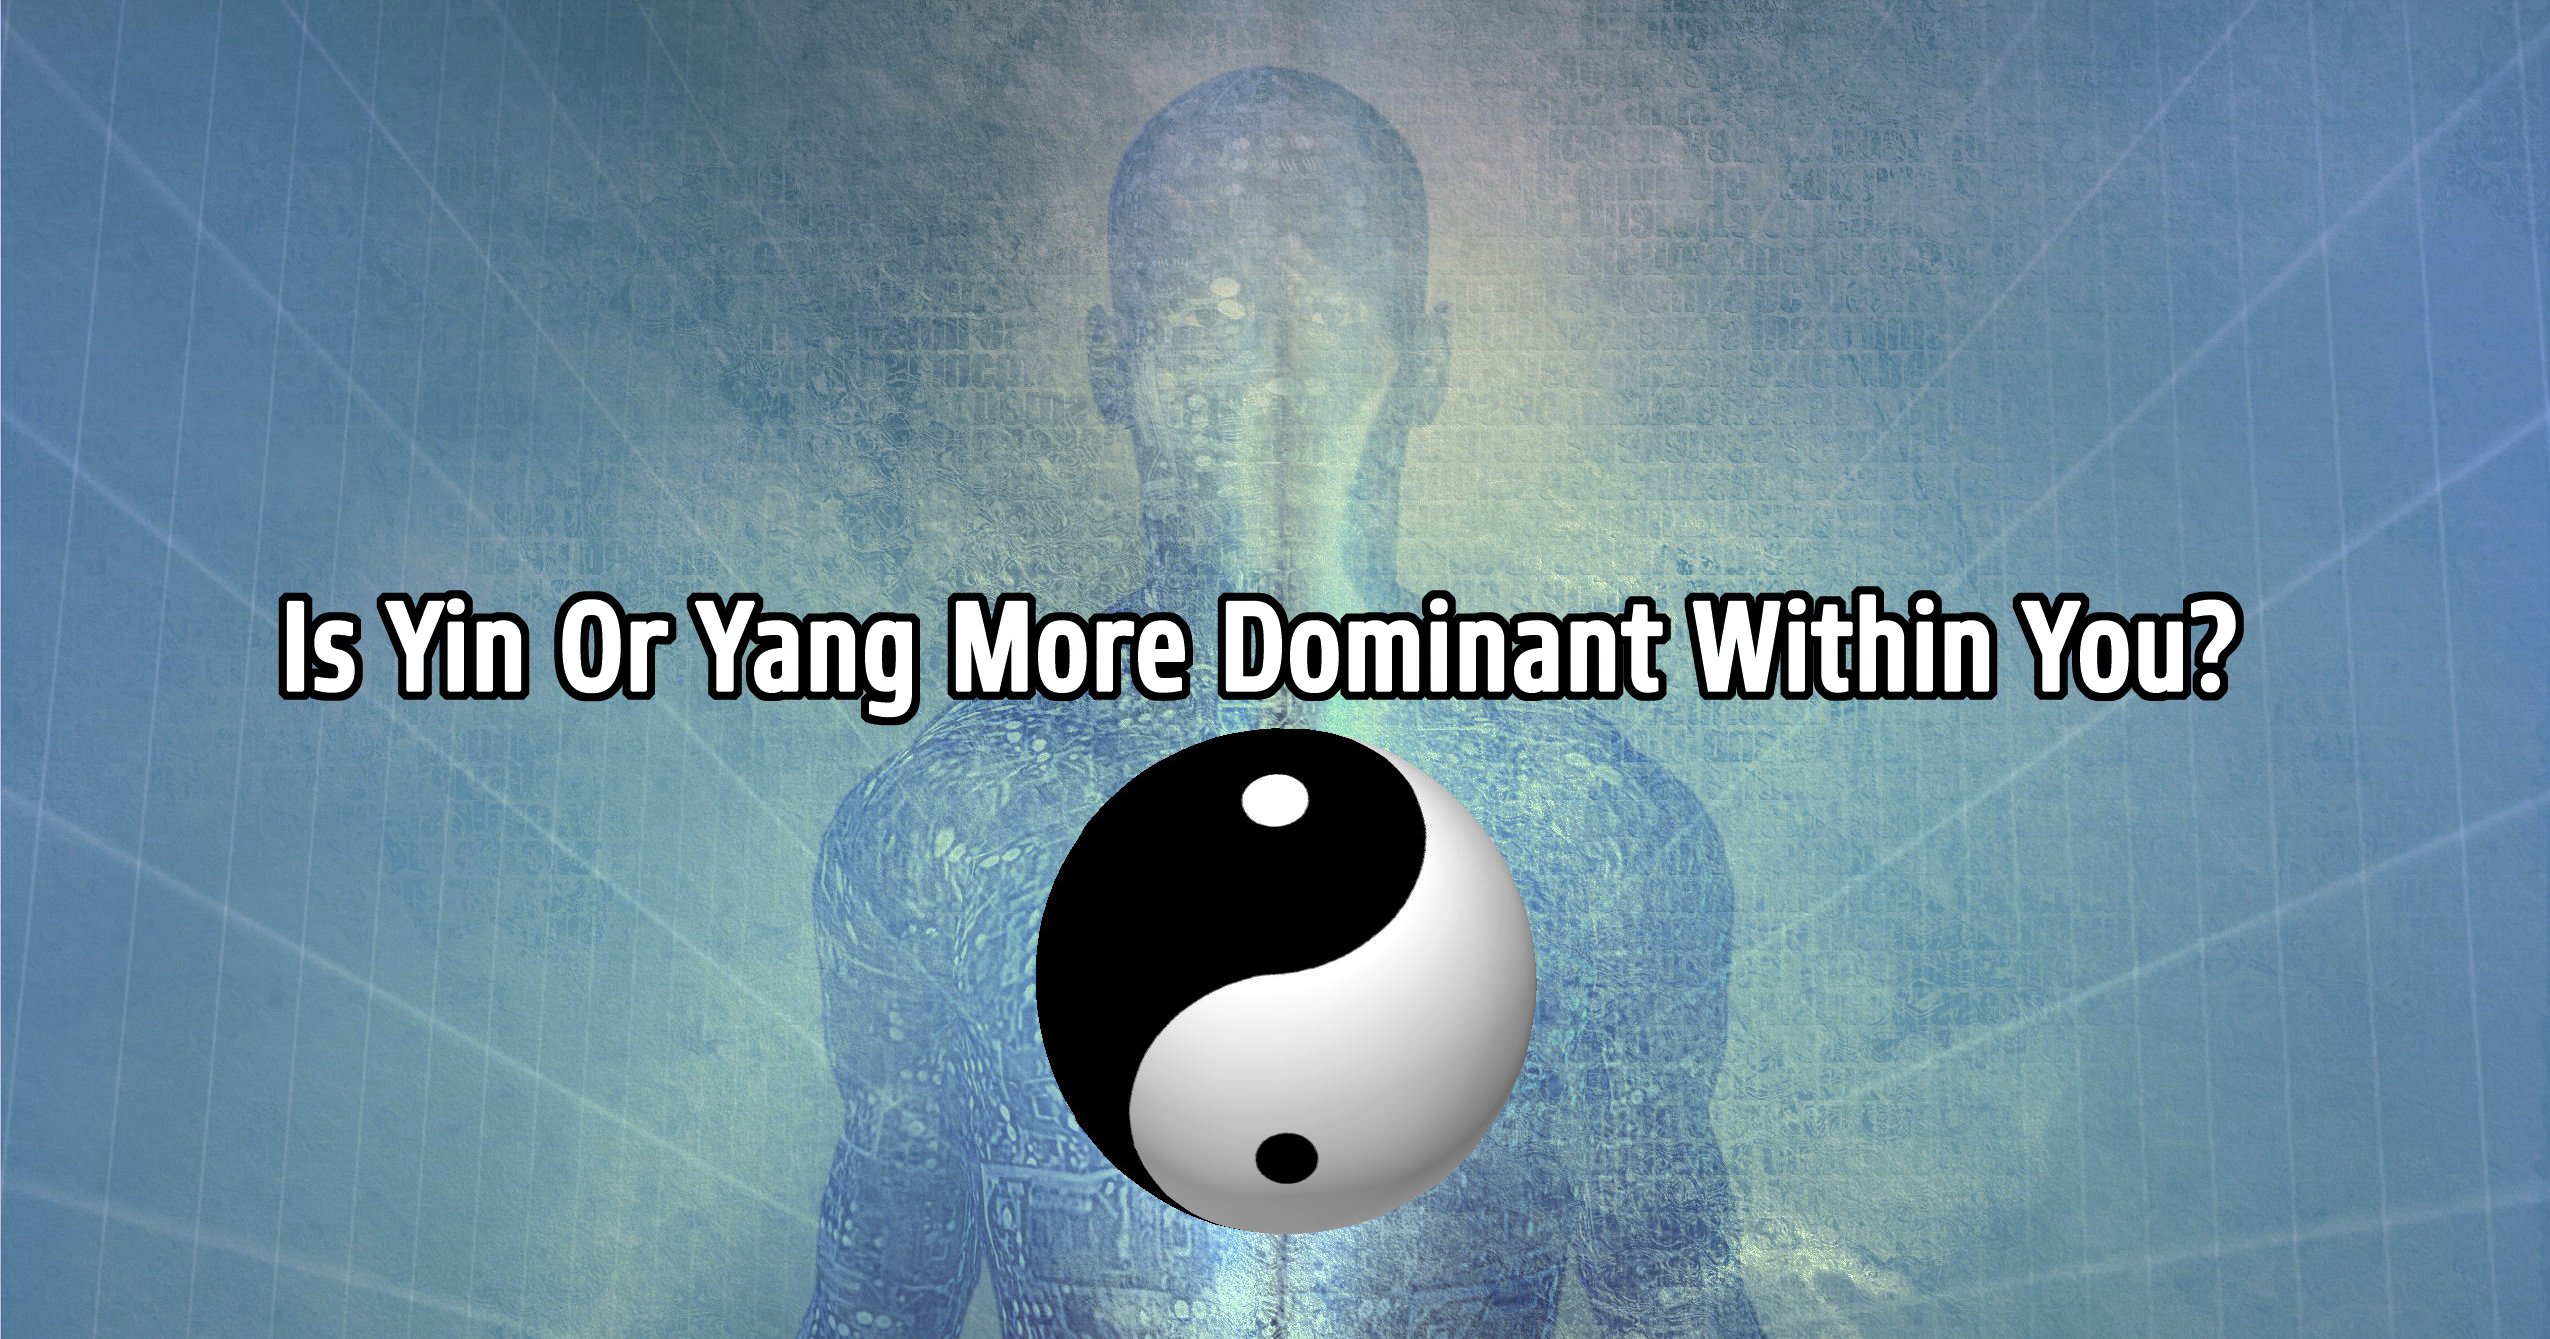 Yin Or Yang What Is More Dominant Within You? - TEST